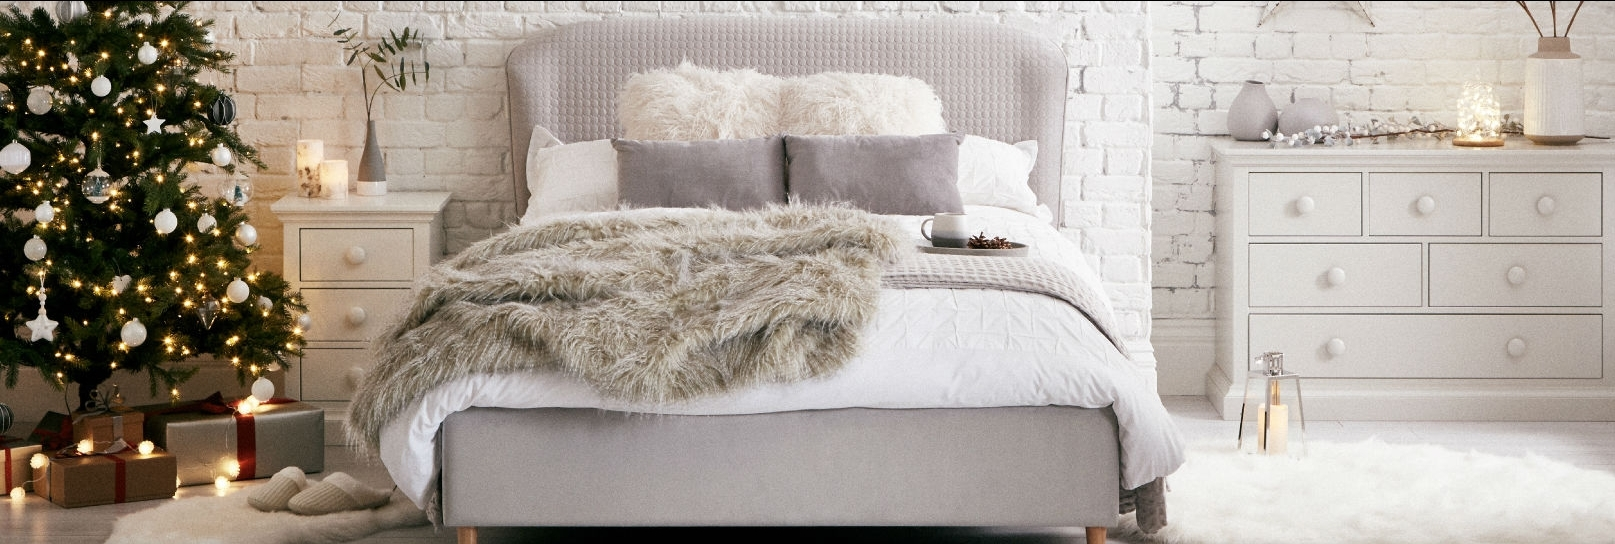 Creating a cosy winter bedroom